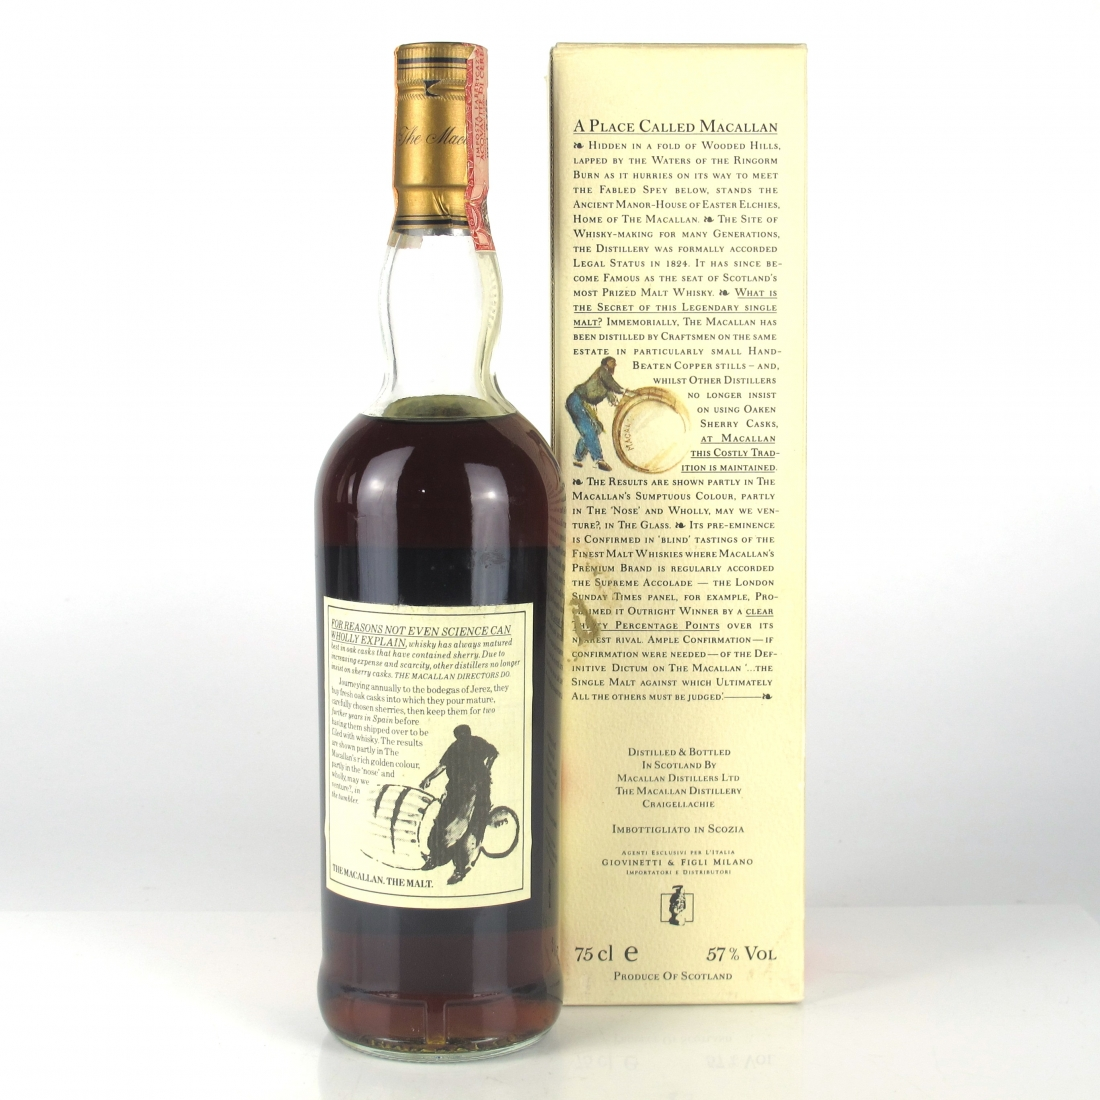 Macallan 10 Year Old Full Proof 1980s / Giovinetti Import